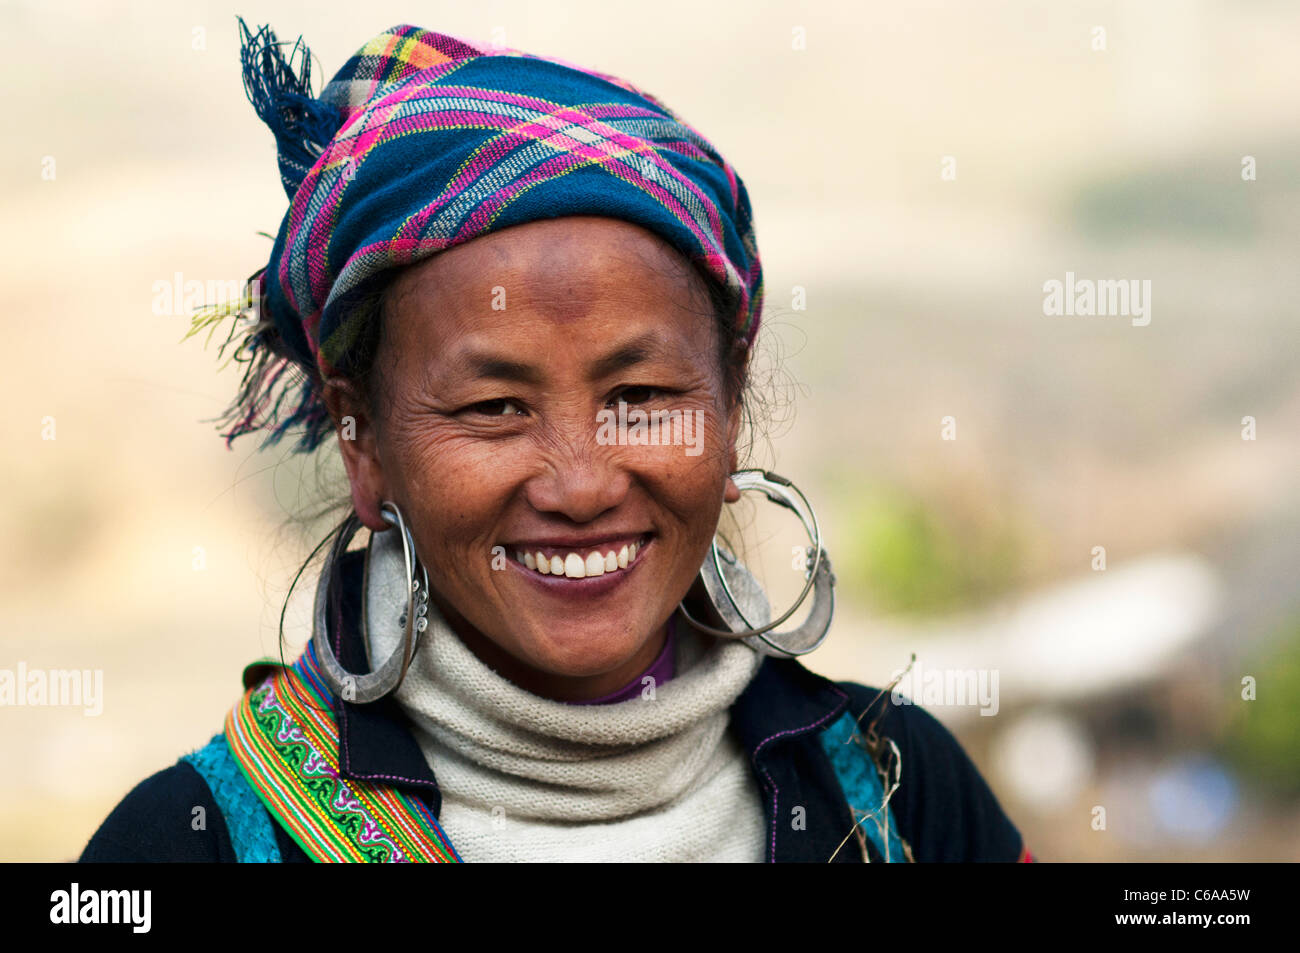 Portrait of a woman from the ethnic minority of the Hmongs in Sapa, North of Vietnam. - Stock Image